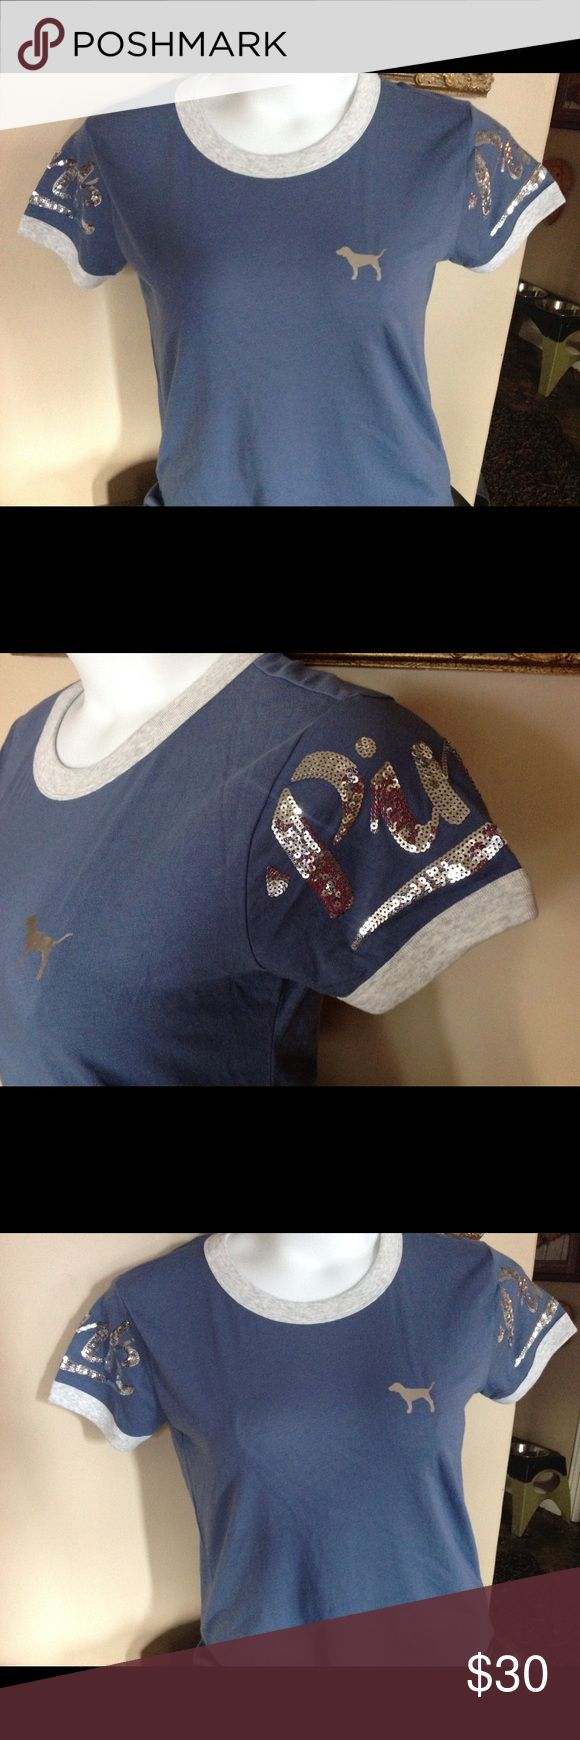 NWT VS PINK Bling Shirt Gorgeous S NWT VS PINK Bling Shirt Gorgeous S  Please see my other items adding every day   Fast shipping PINK Victoria's Secret Tops Tees - Short Sleeve